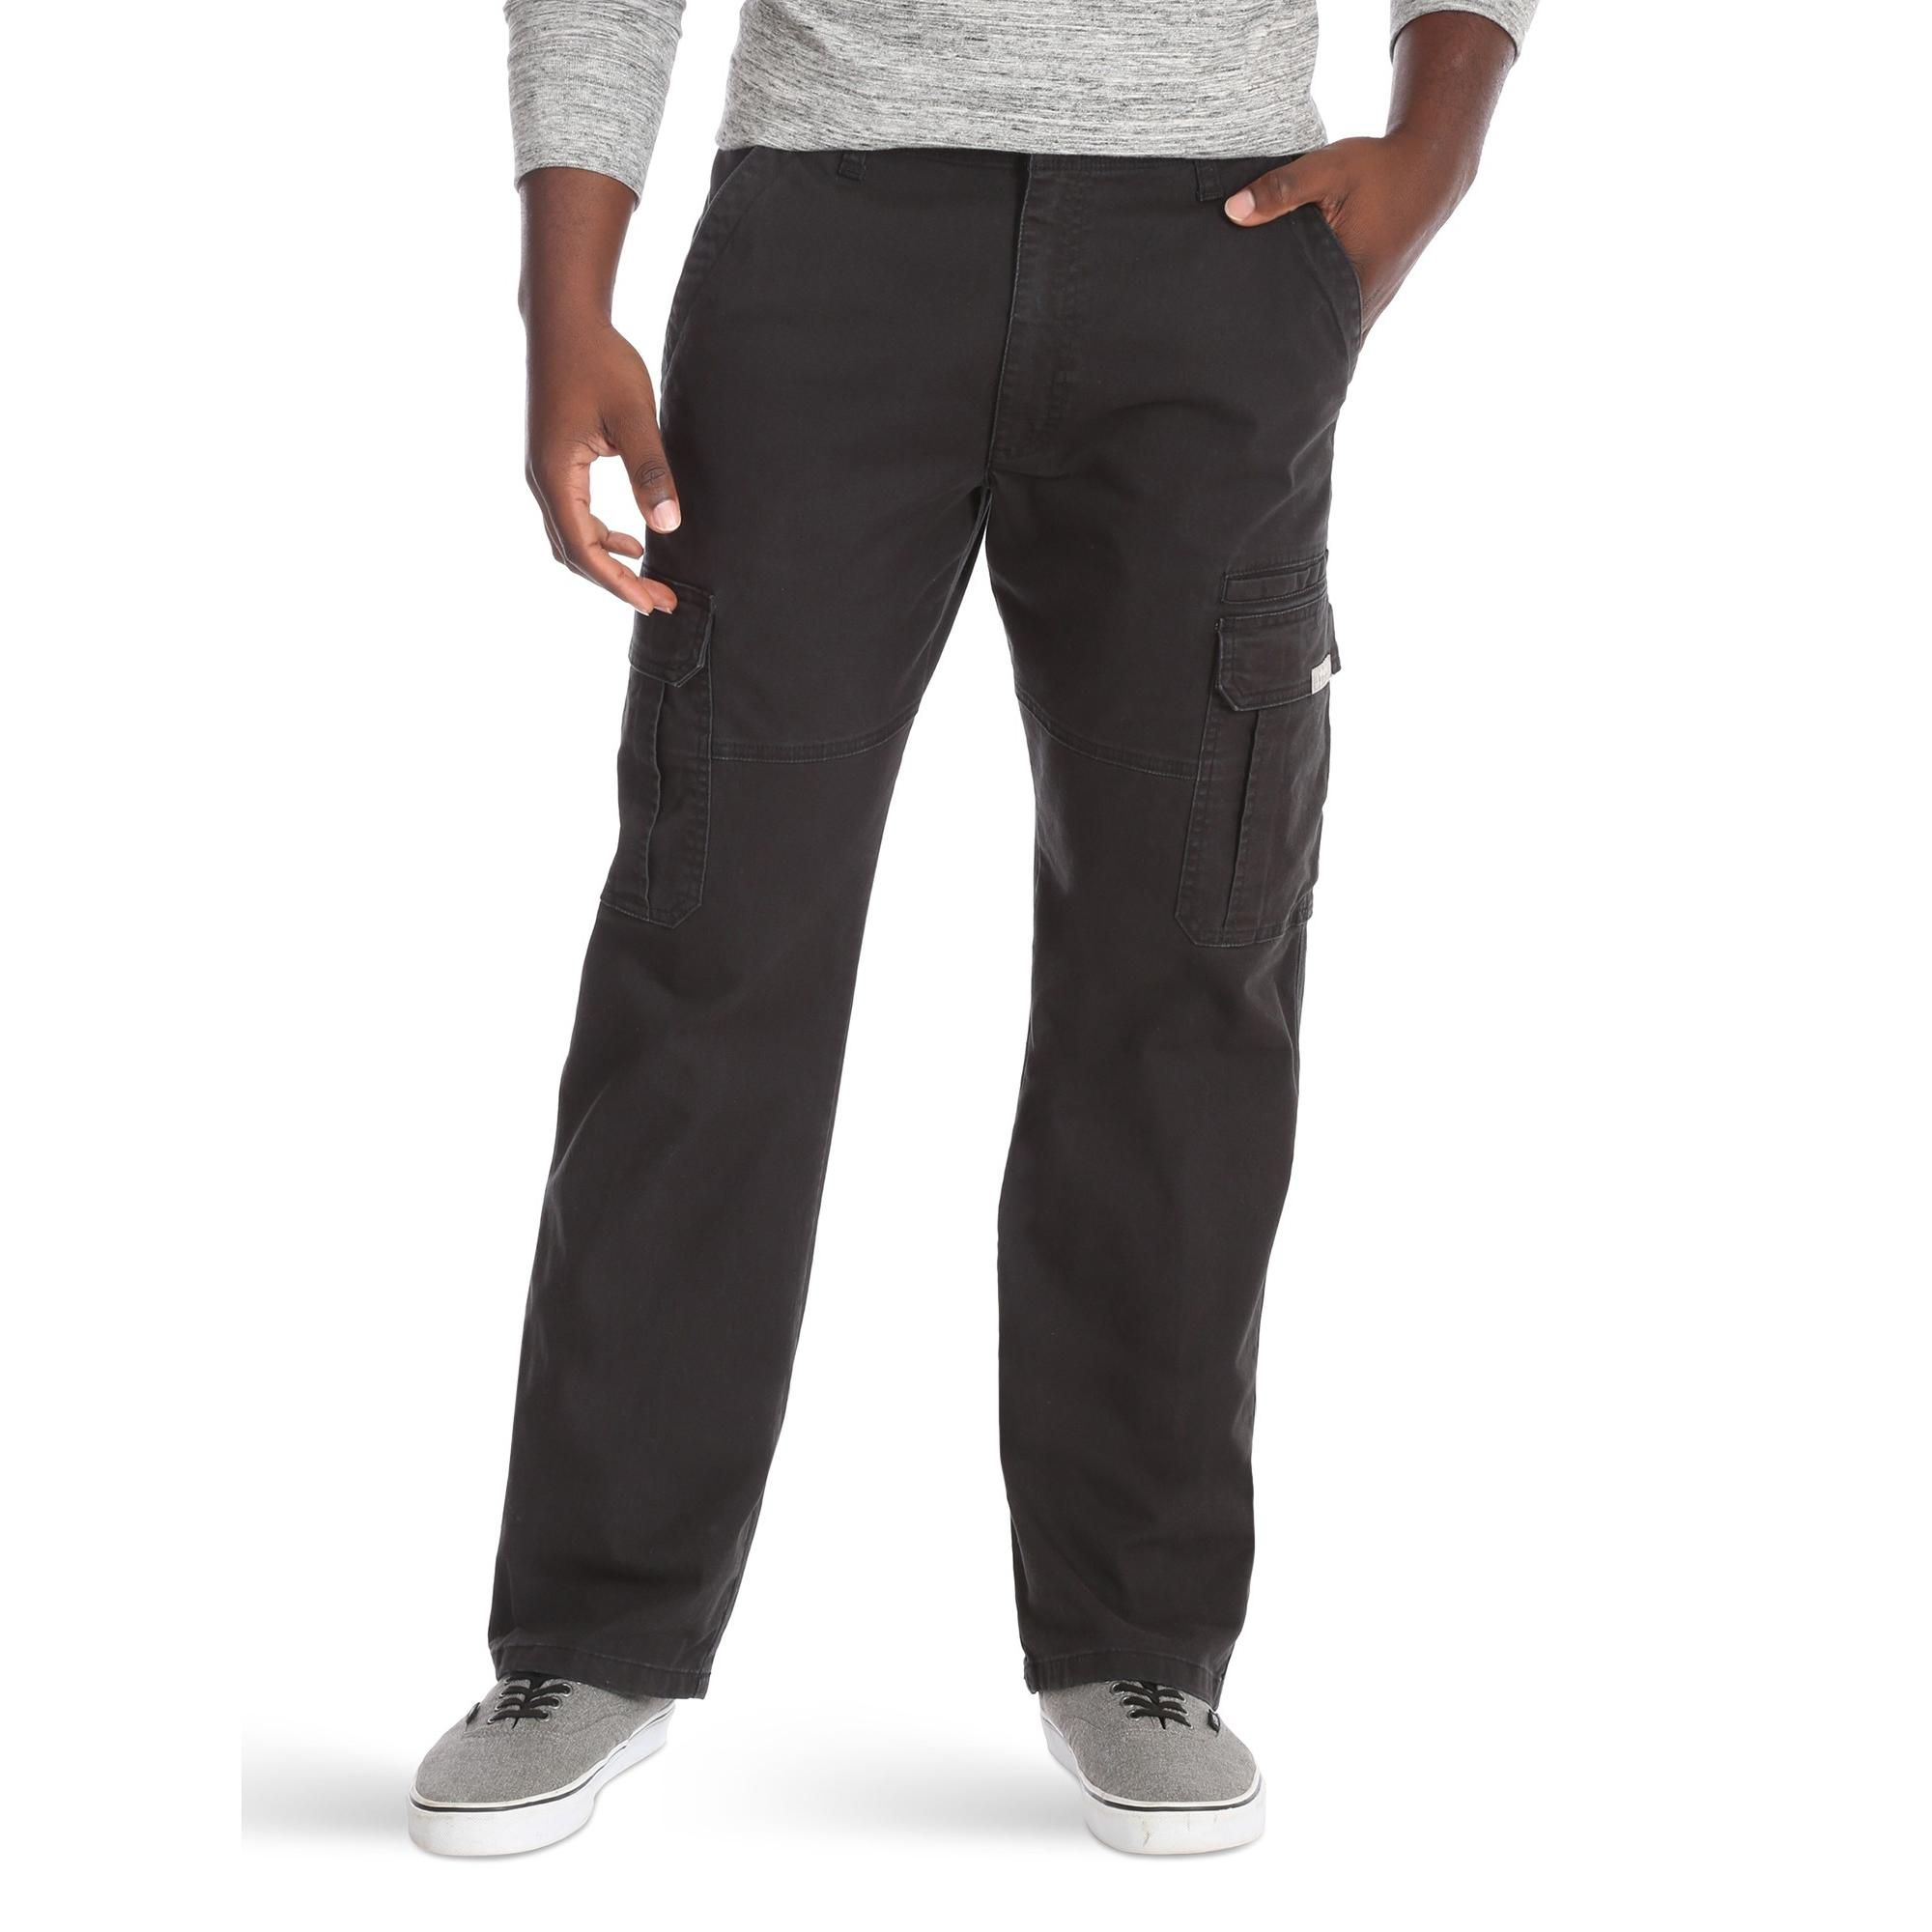 Wrangler Wrangler Men S Relaxed Fit Stretch Cargo Pants Walmart Com In 2021 Cargo Pant Relaxed Fit Black Stretch [ 2000 x 2000 Pixel ]